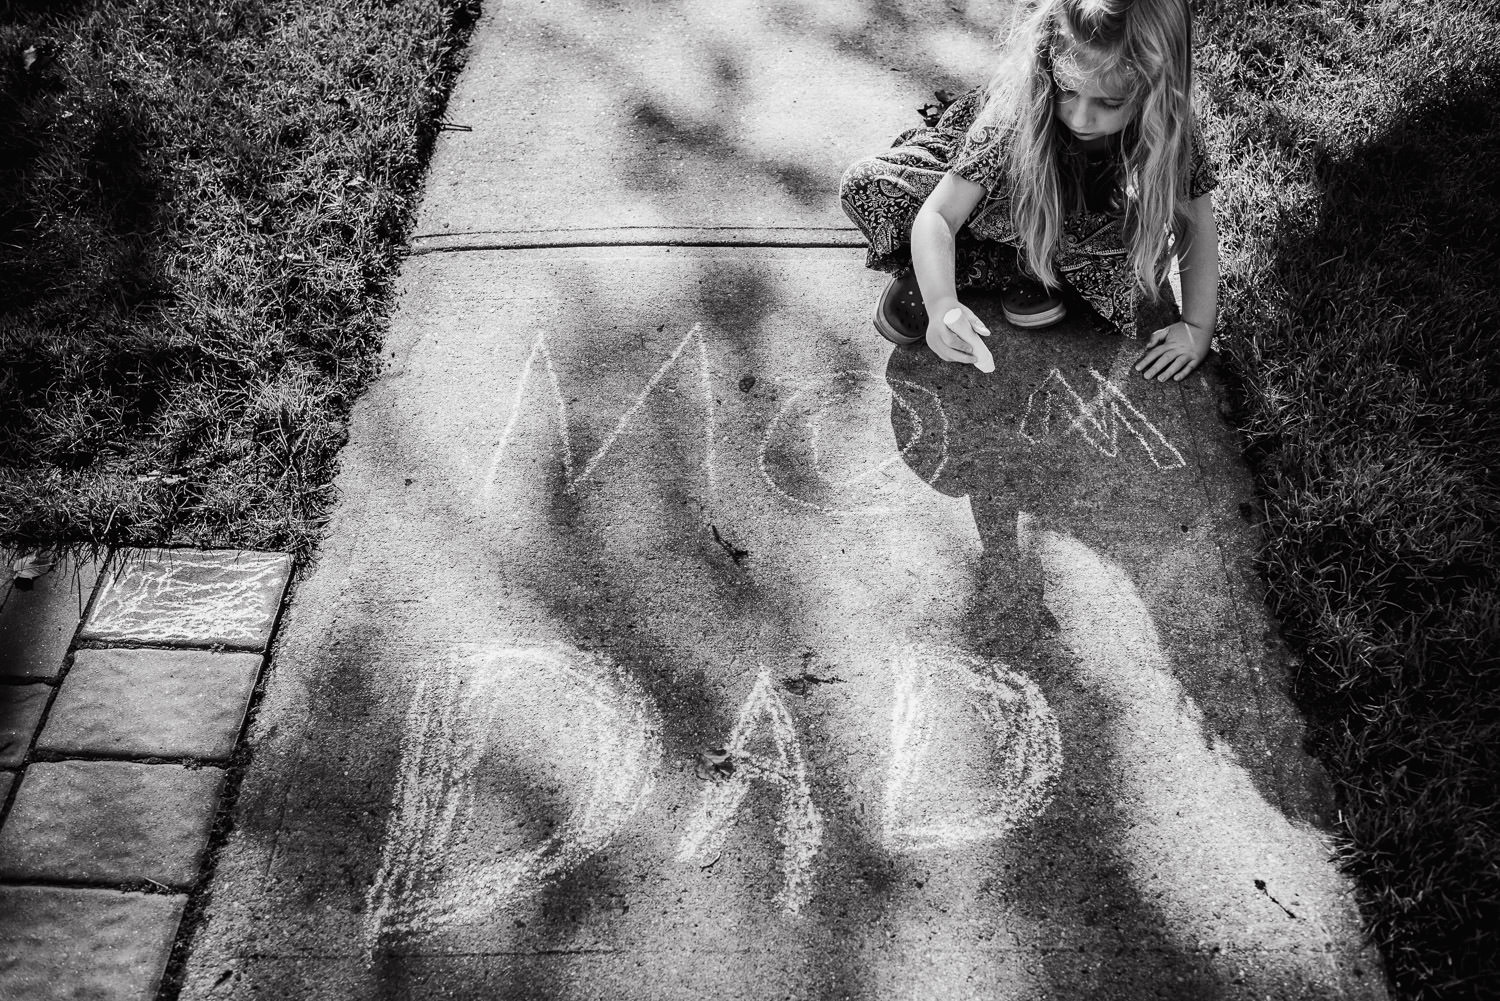 A little girl draws with chalk.